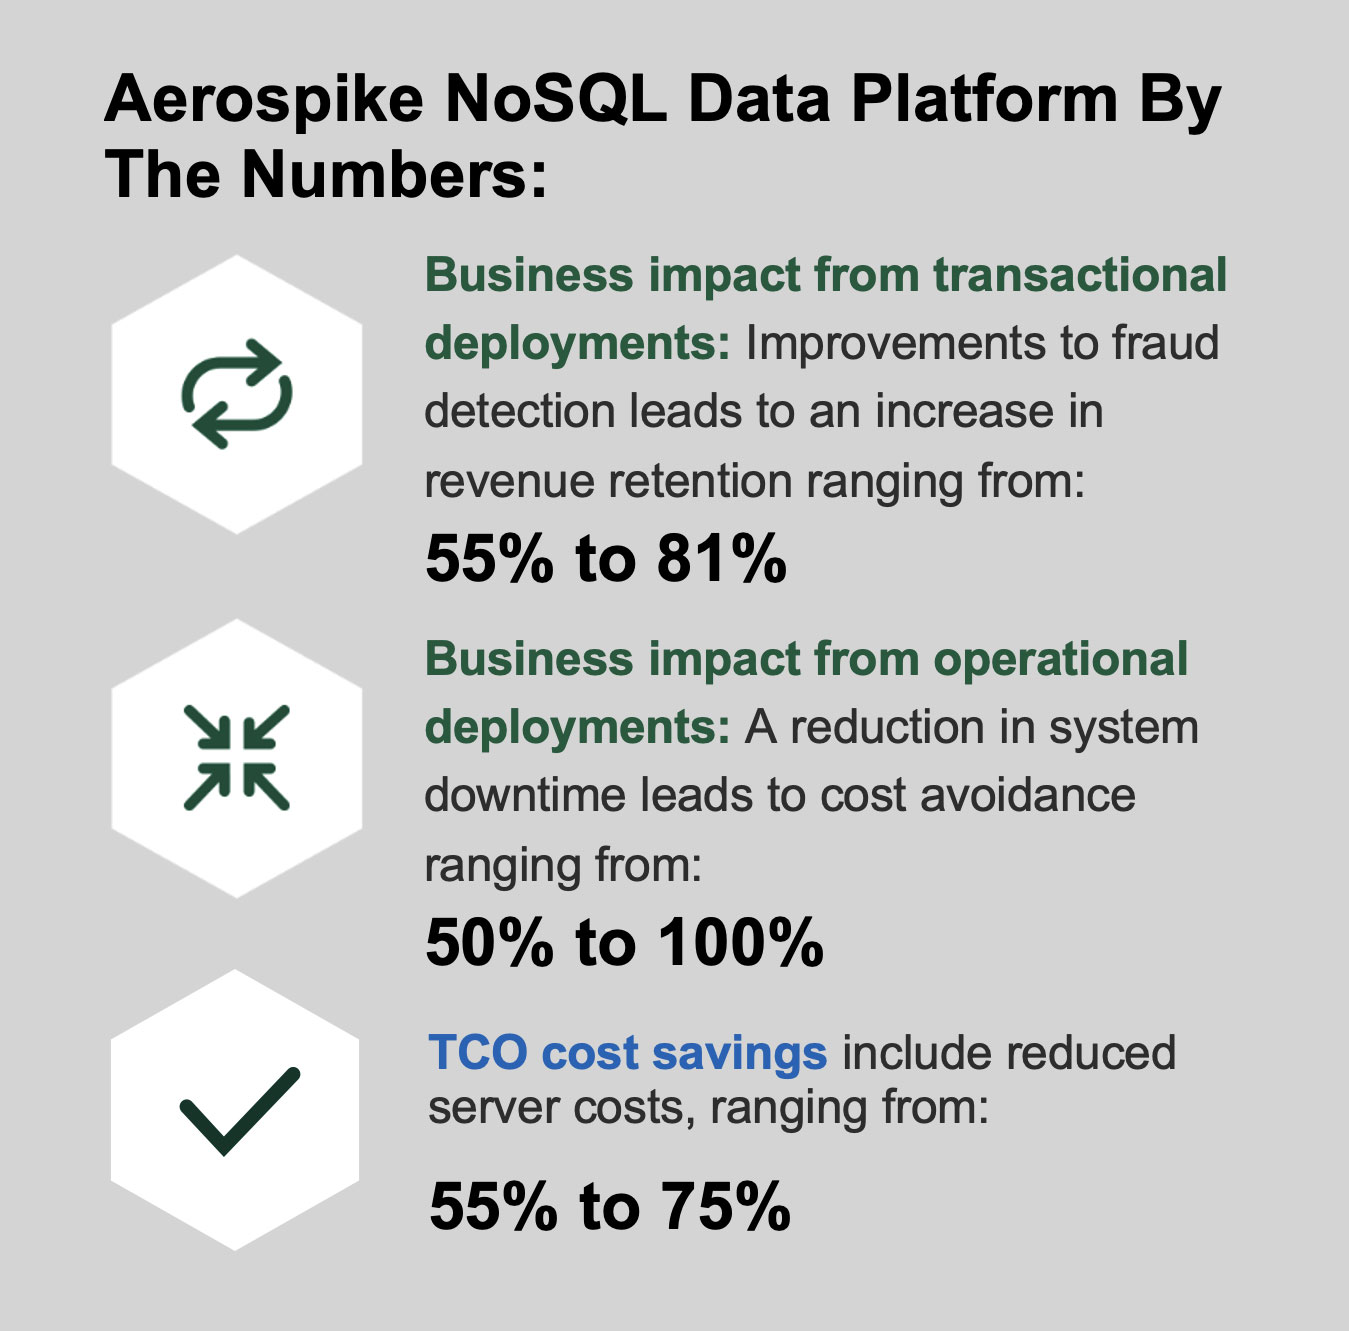 Forrester TEI Study - Aerospike NoSQL Data Platform by the numbers